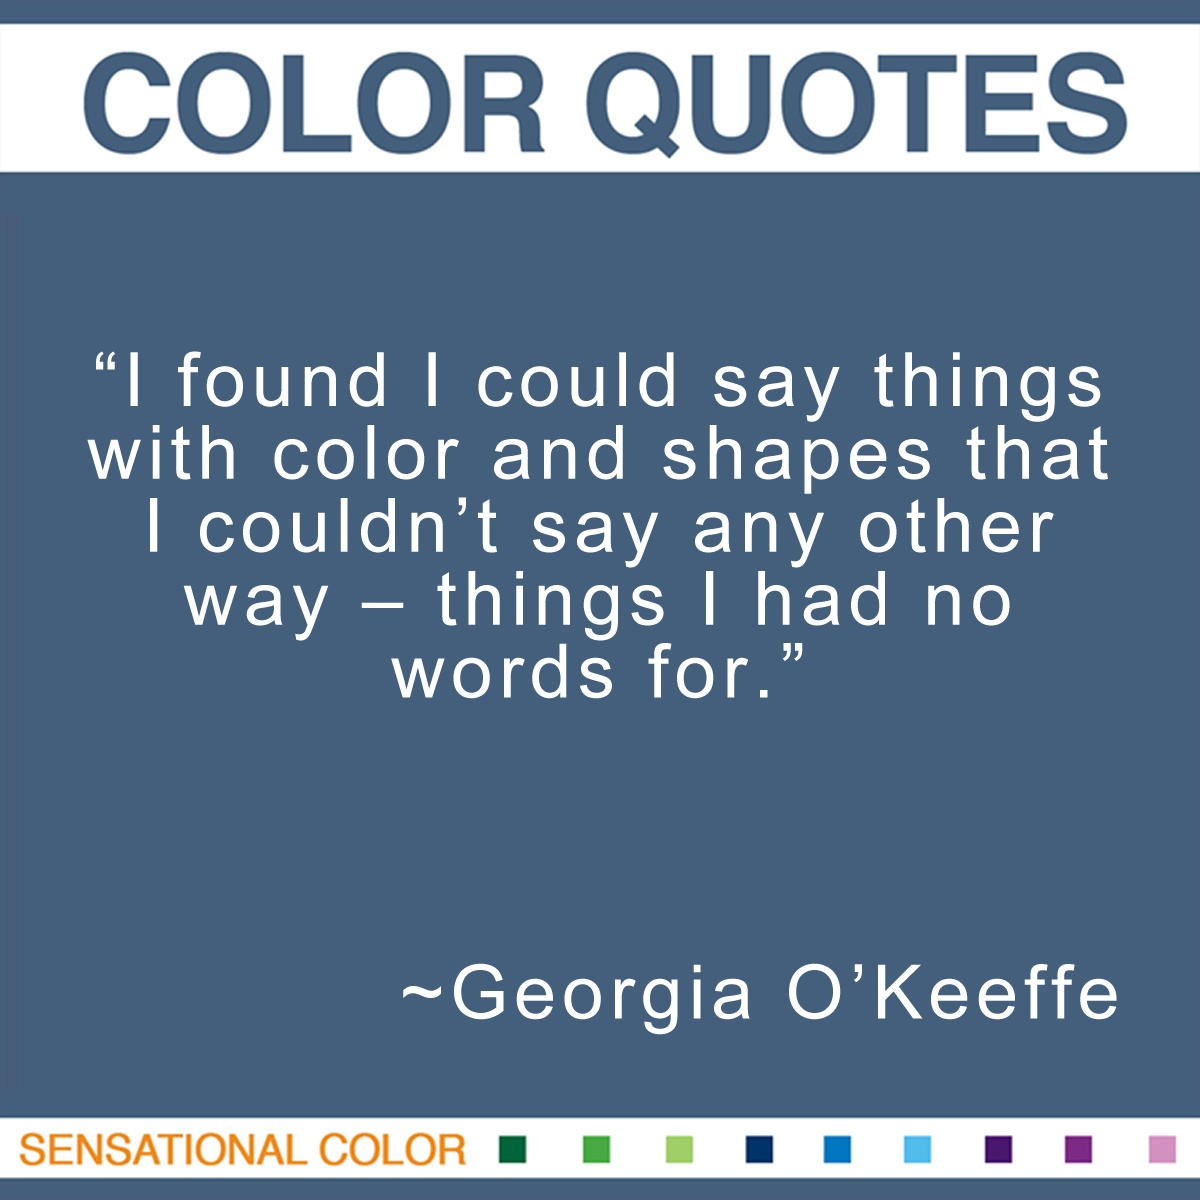 """I found I could say things with color and shapes that I couldn't say any other way – things I had no words for."" - Georgia O'Keeffe"